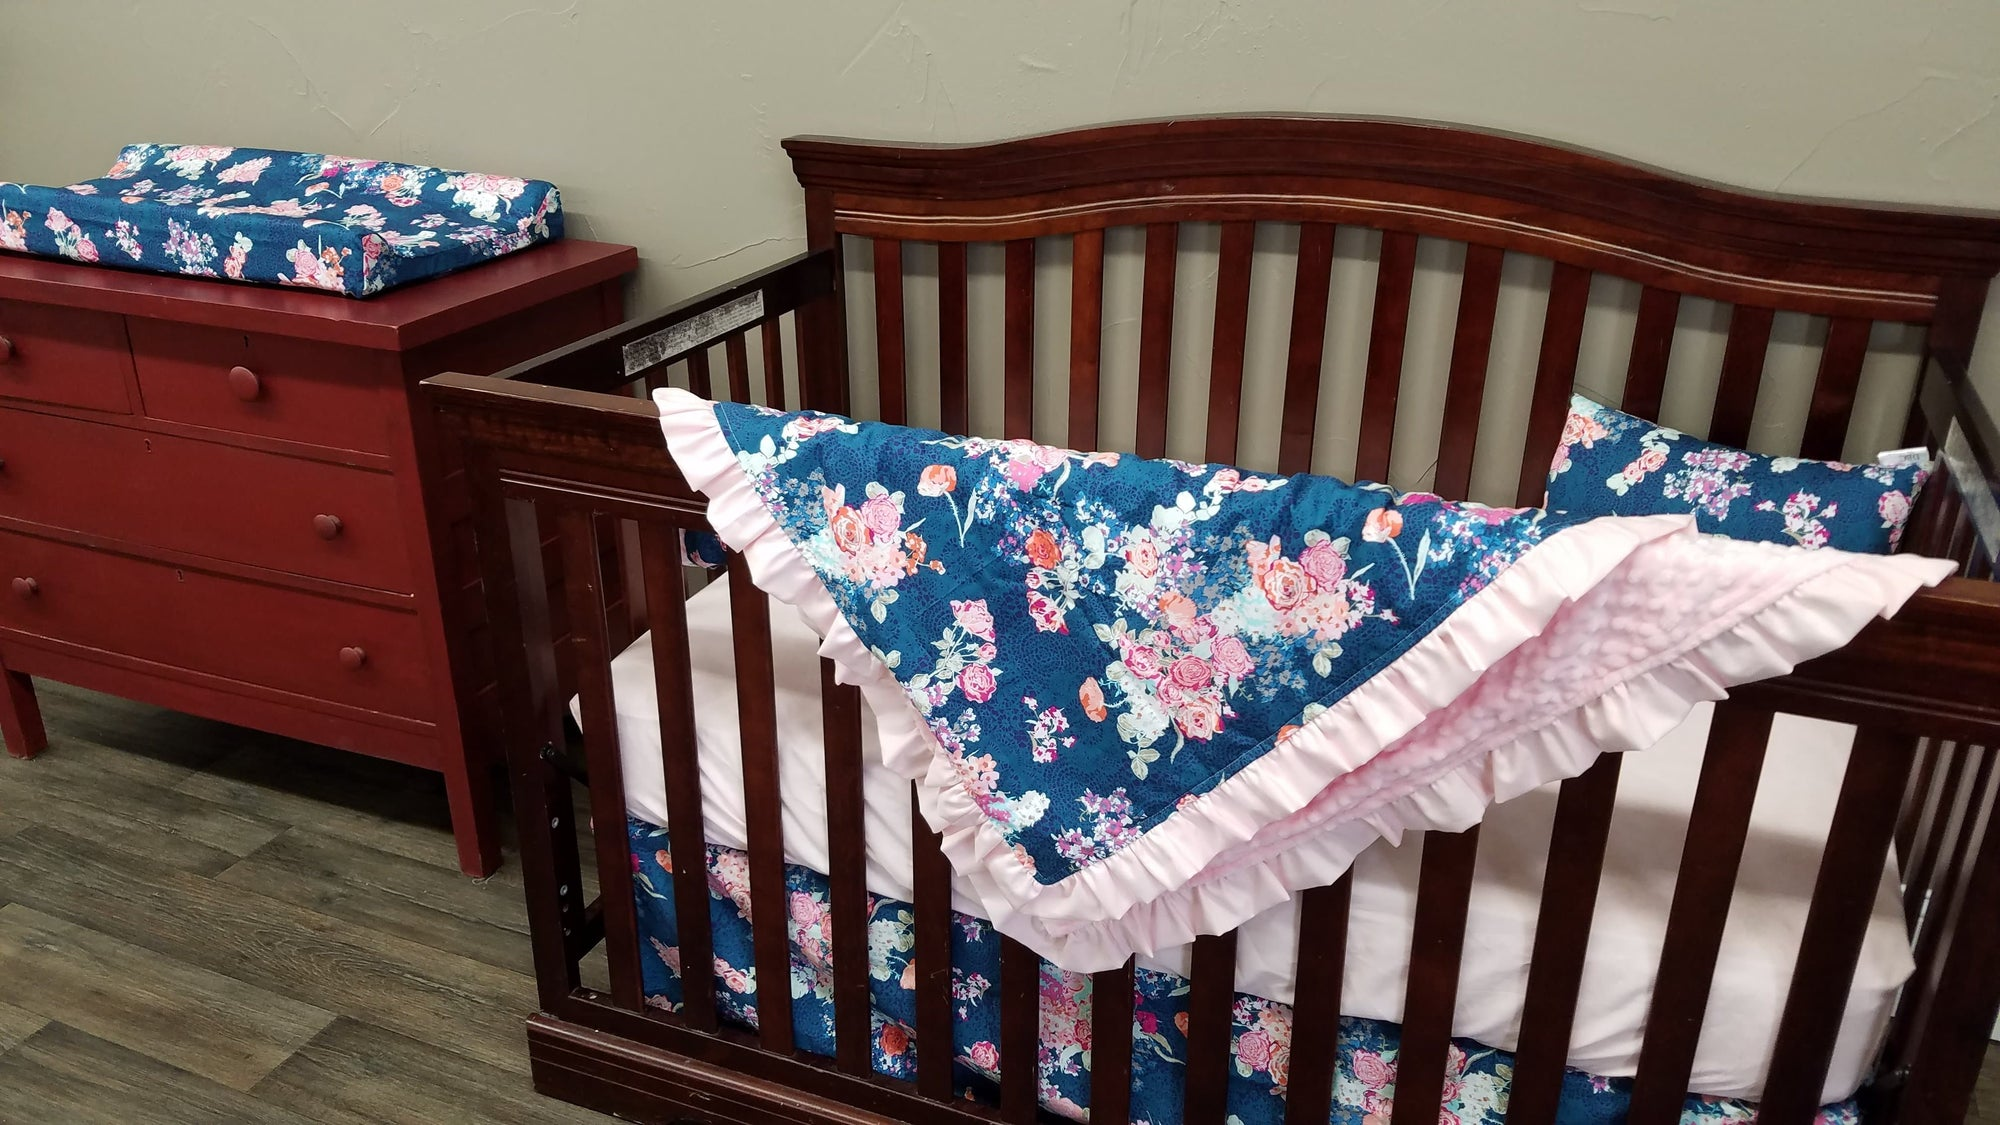 Pre-Order Girl Crib Bedding - Navy Coral Floral and Blush, Floral Crib Bedding